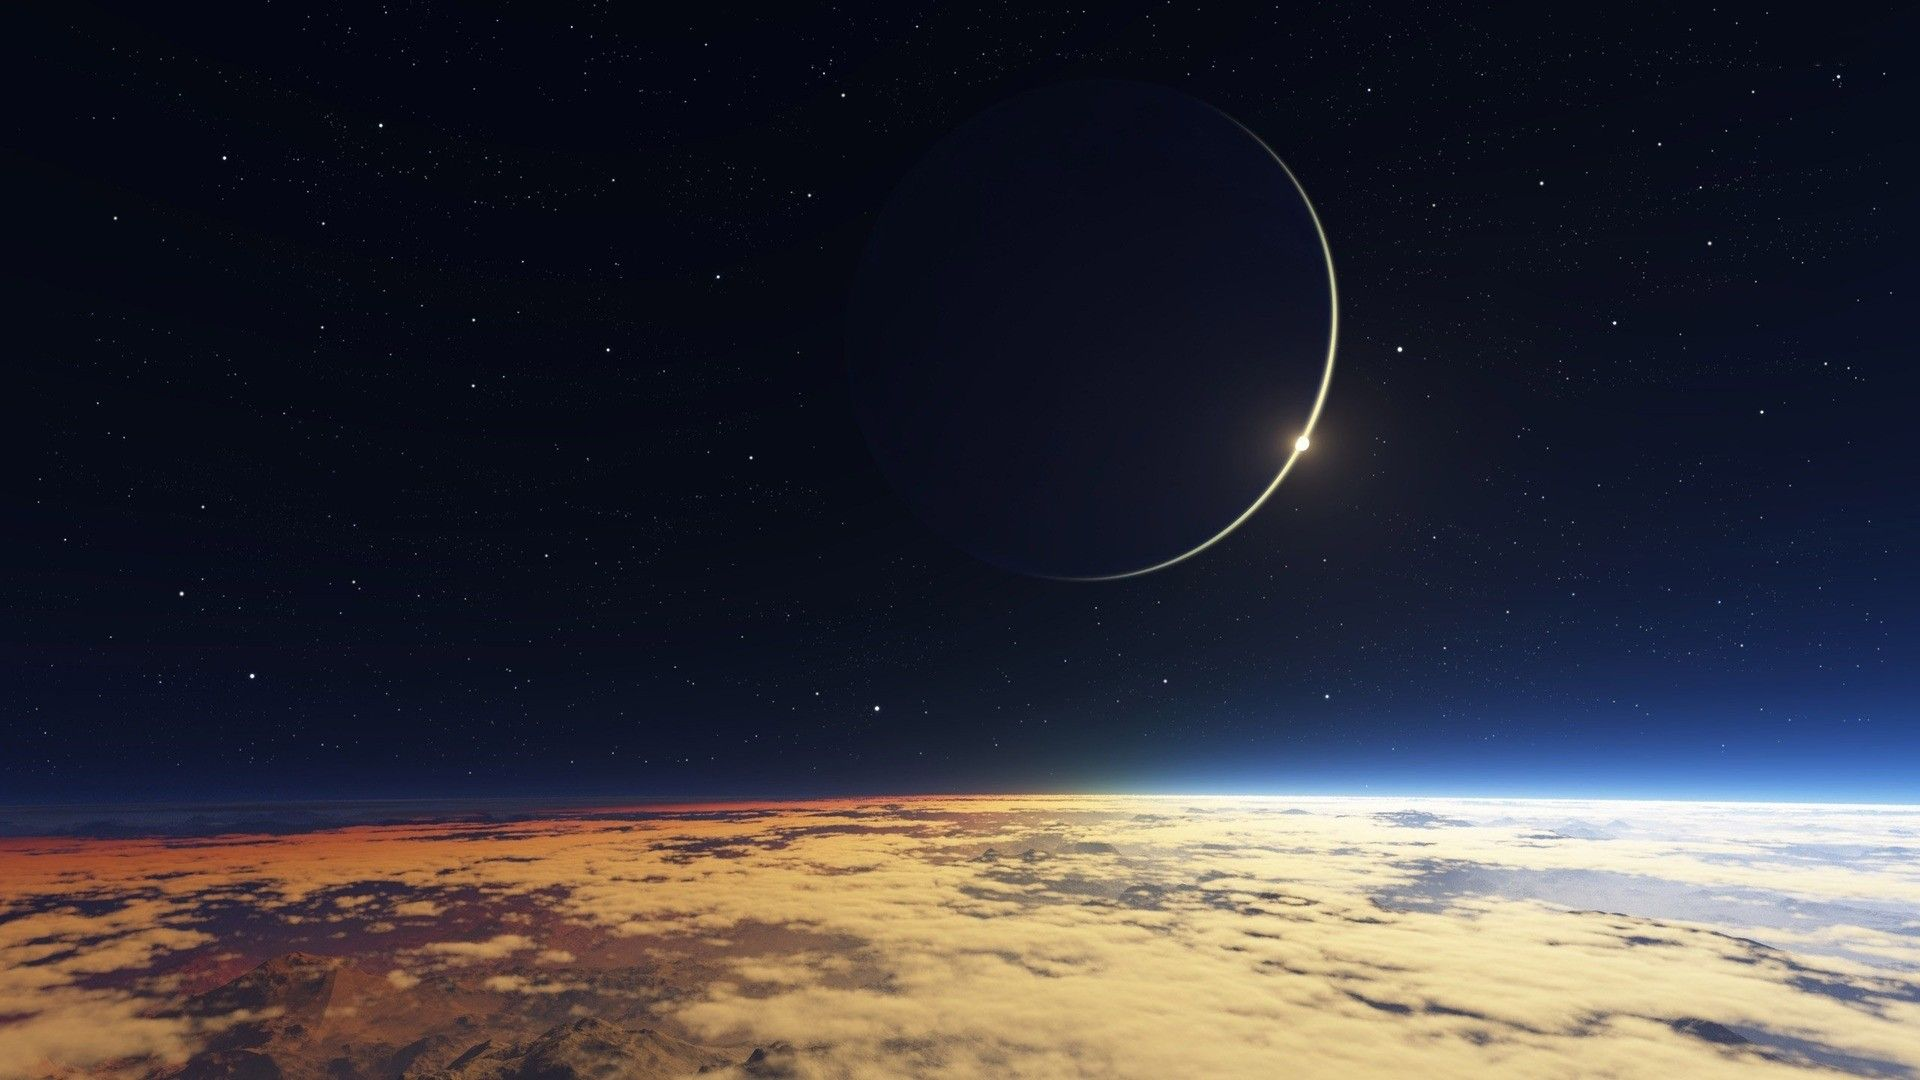 Res 1920x1080 Moon And Earth Backgrounds Space Wallpaper